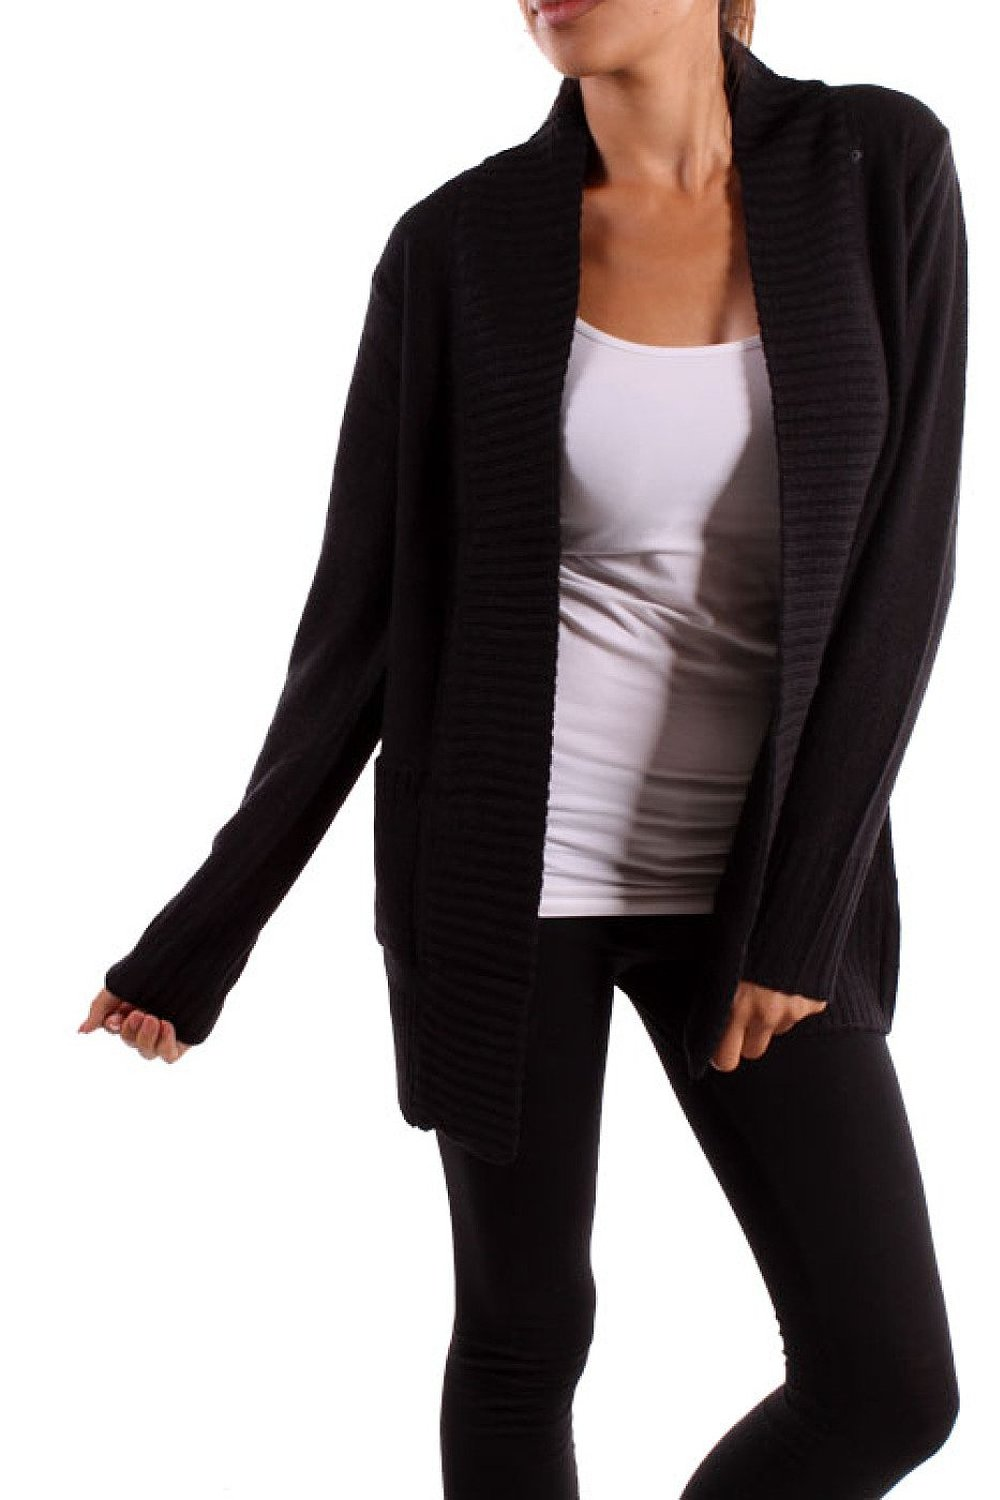 2luv women's long sleeve open front knit cardigan at amazon women's clothing store: cardigan sweaters